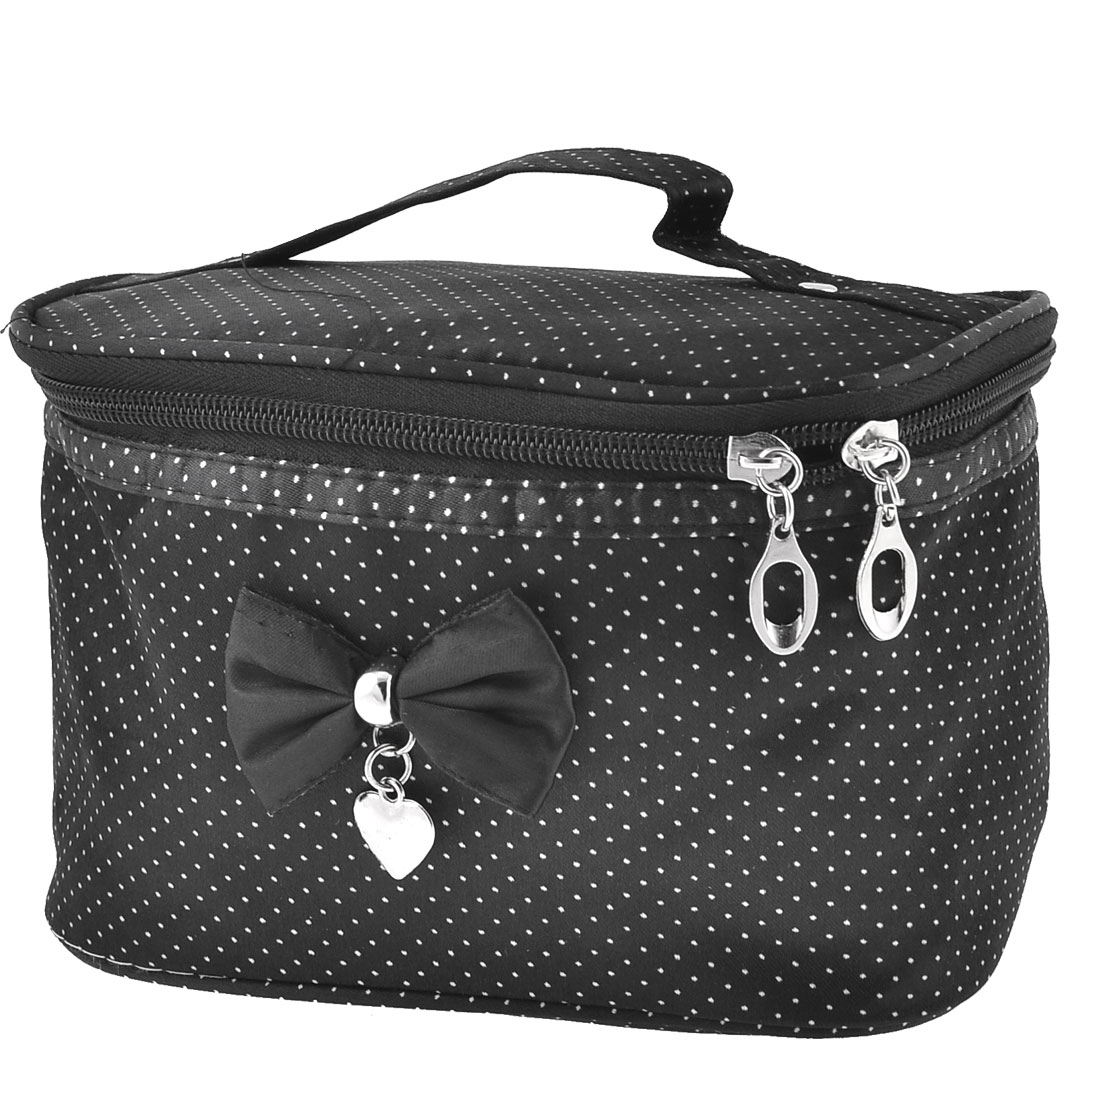 Lady Dots Print Zip up Closure Black White Cosmetic Bag Purse w Mirror